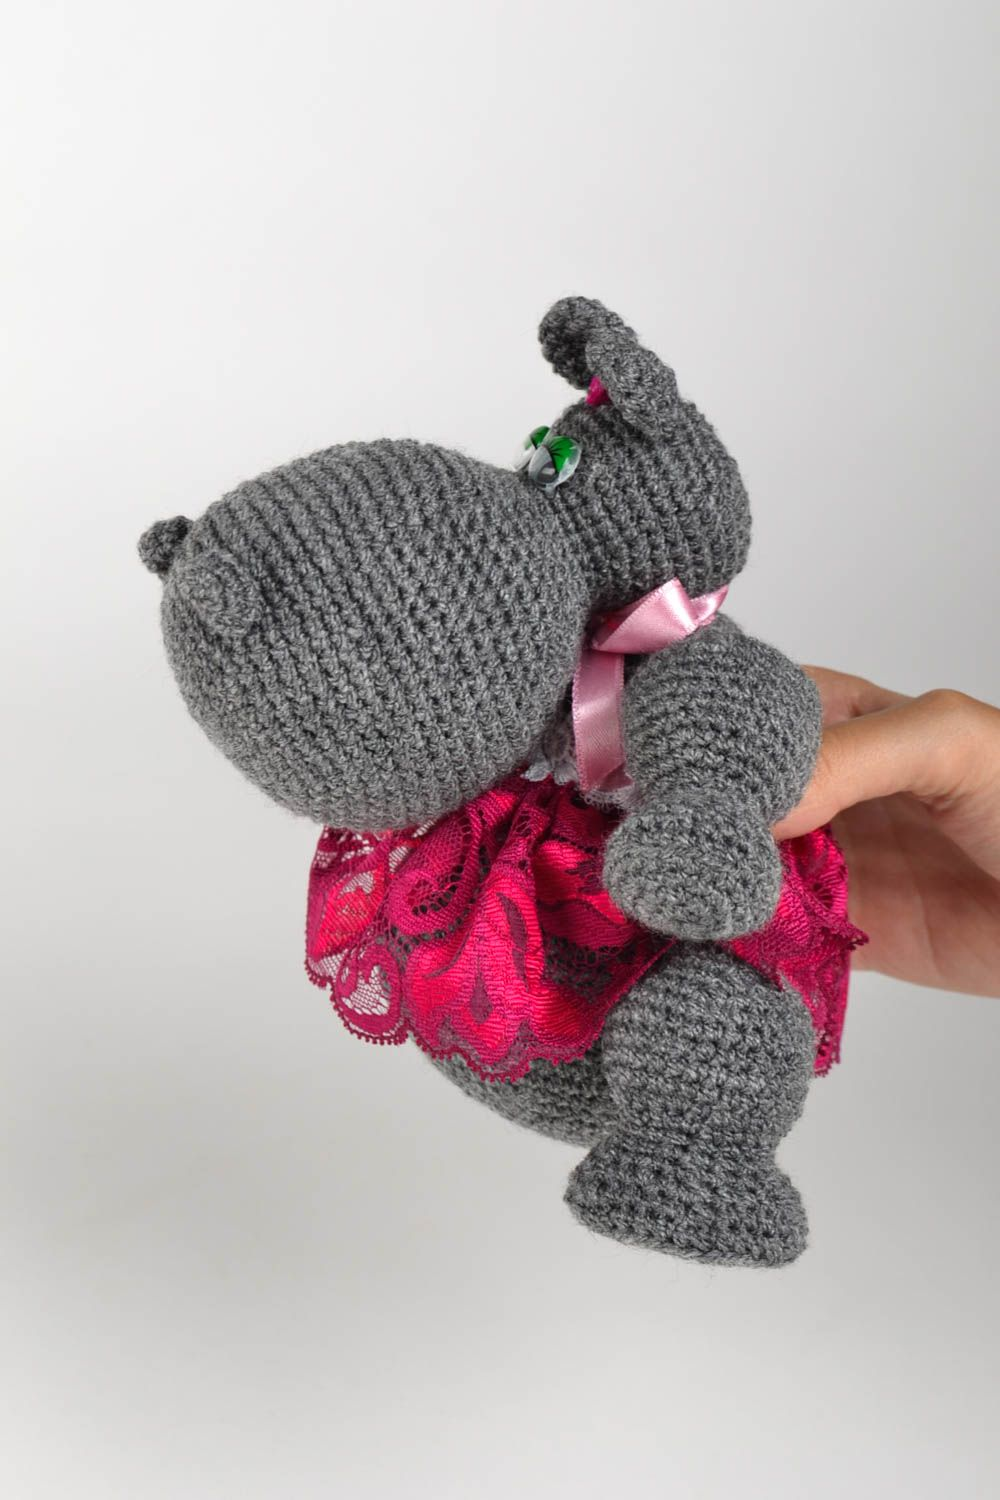 knitted toys Crocheted soft toy hand-crocheted stuffed toy for babies home decor ideas - MADEheart.com